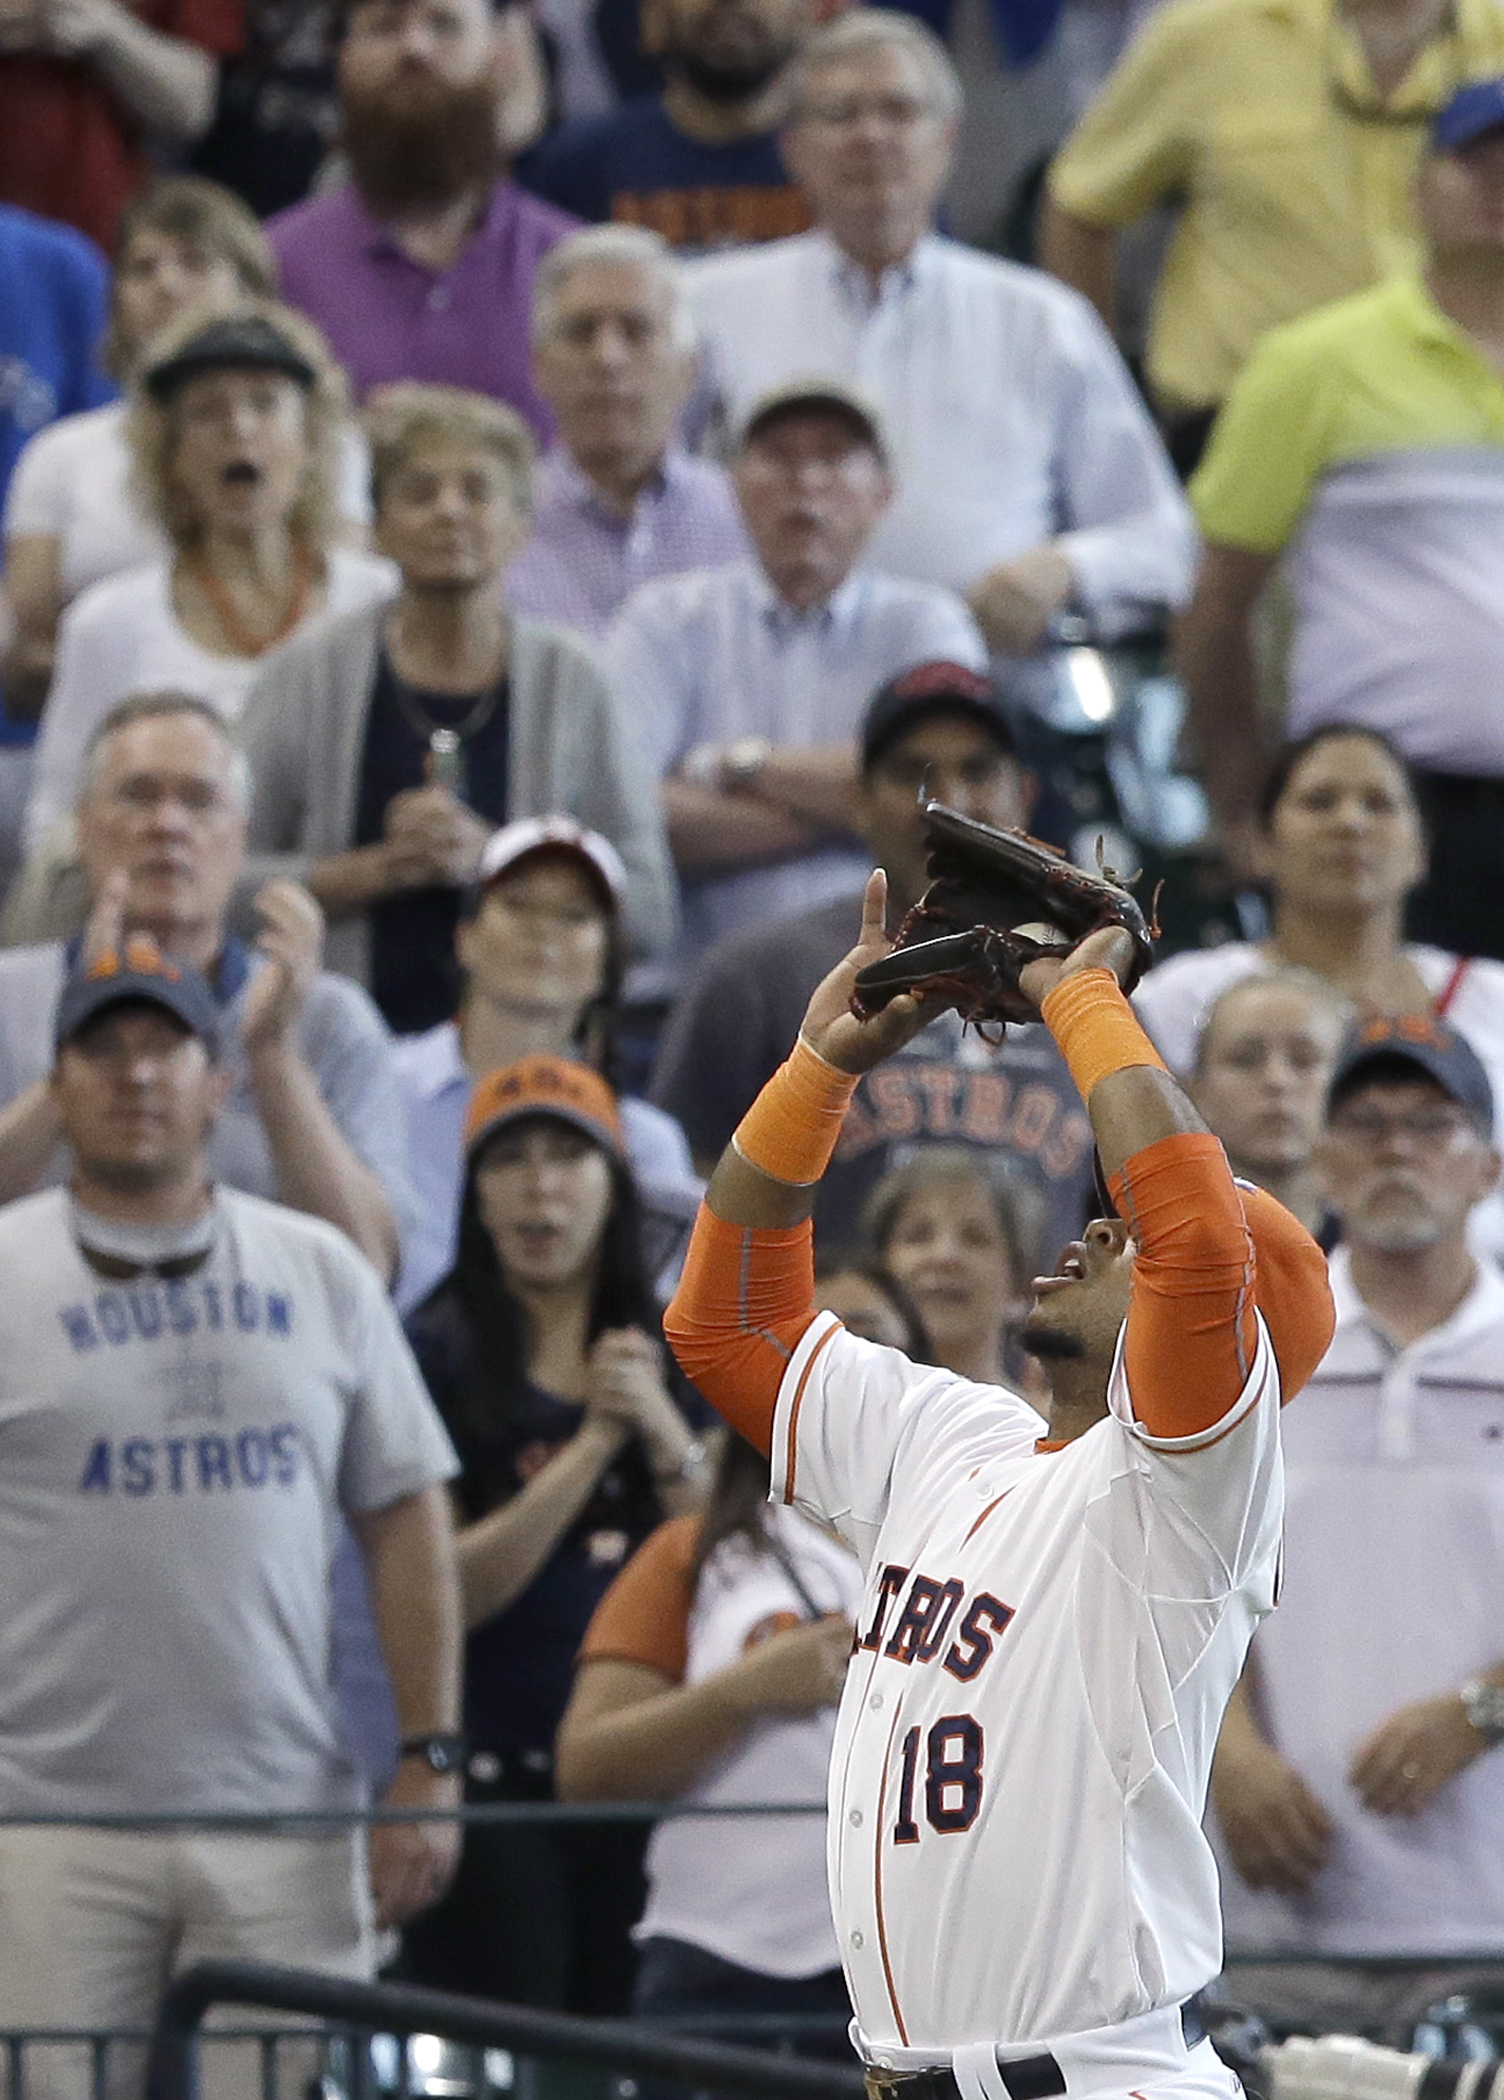 Houston Astros third baseman Luis Valbuena (18) makes the catch and the out on Toronto Blue Jays' Ezequiel Carrera to end the baseball game, Sunday, May 17, 2015, in Houston. The Astros won 4-2. (AP Photo/Pat Sullivan)